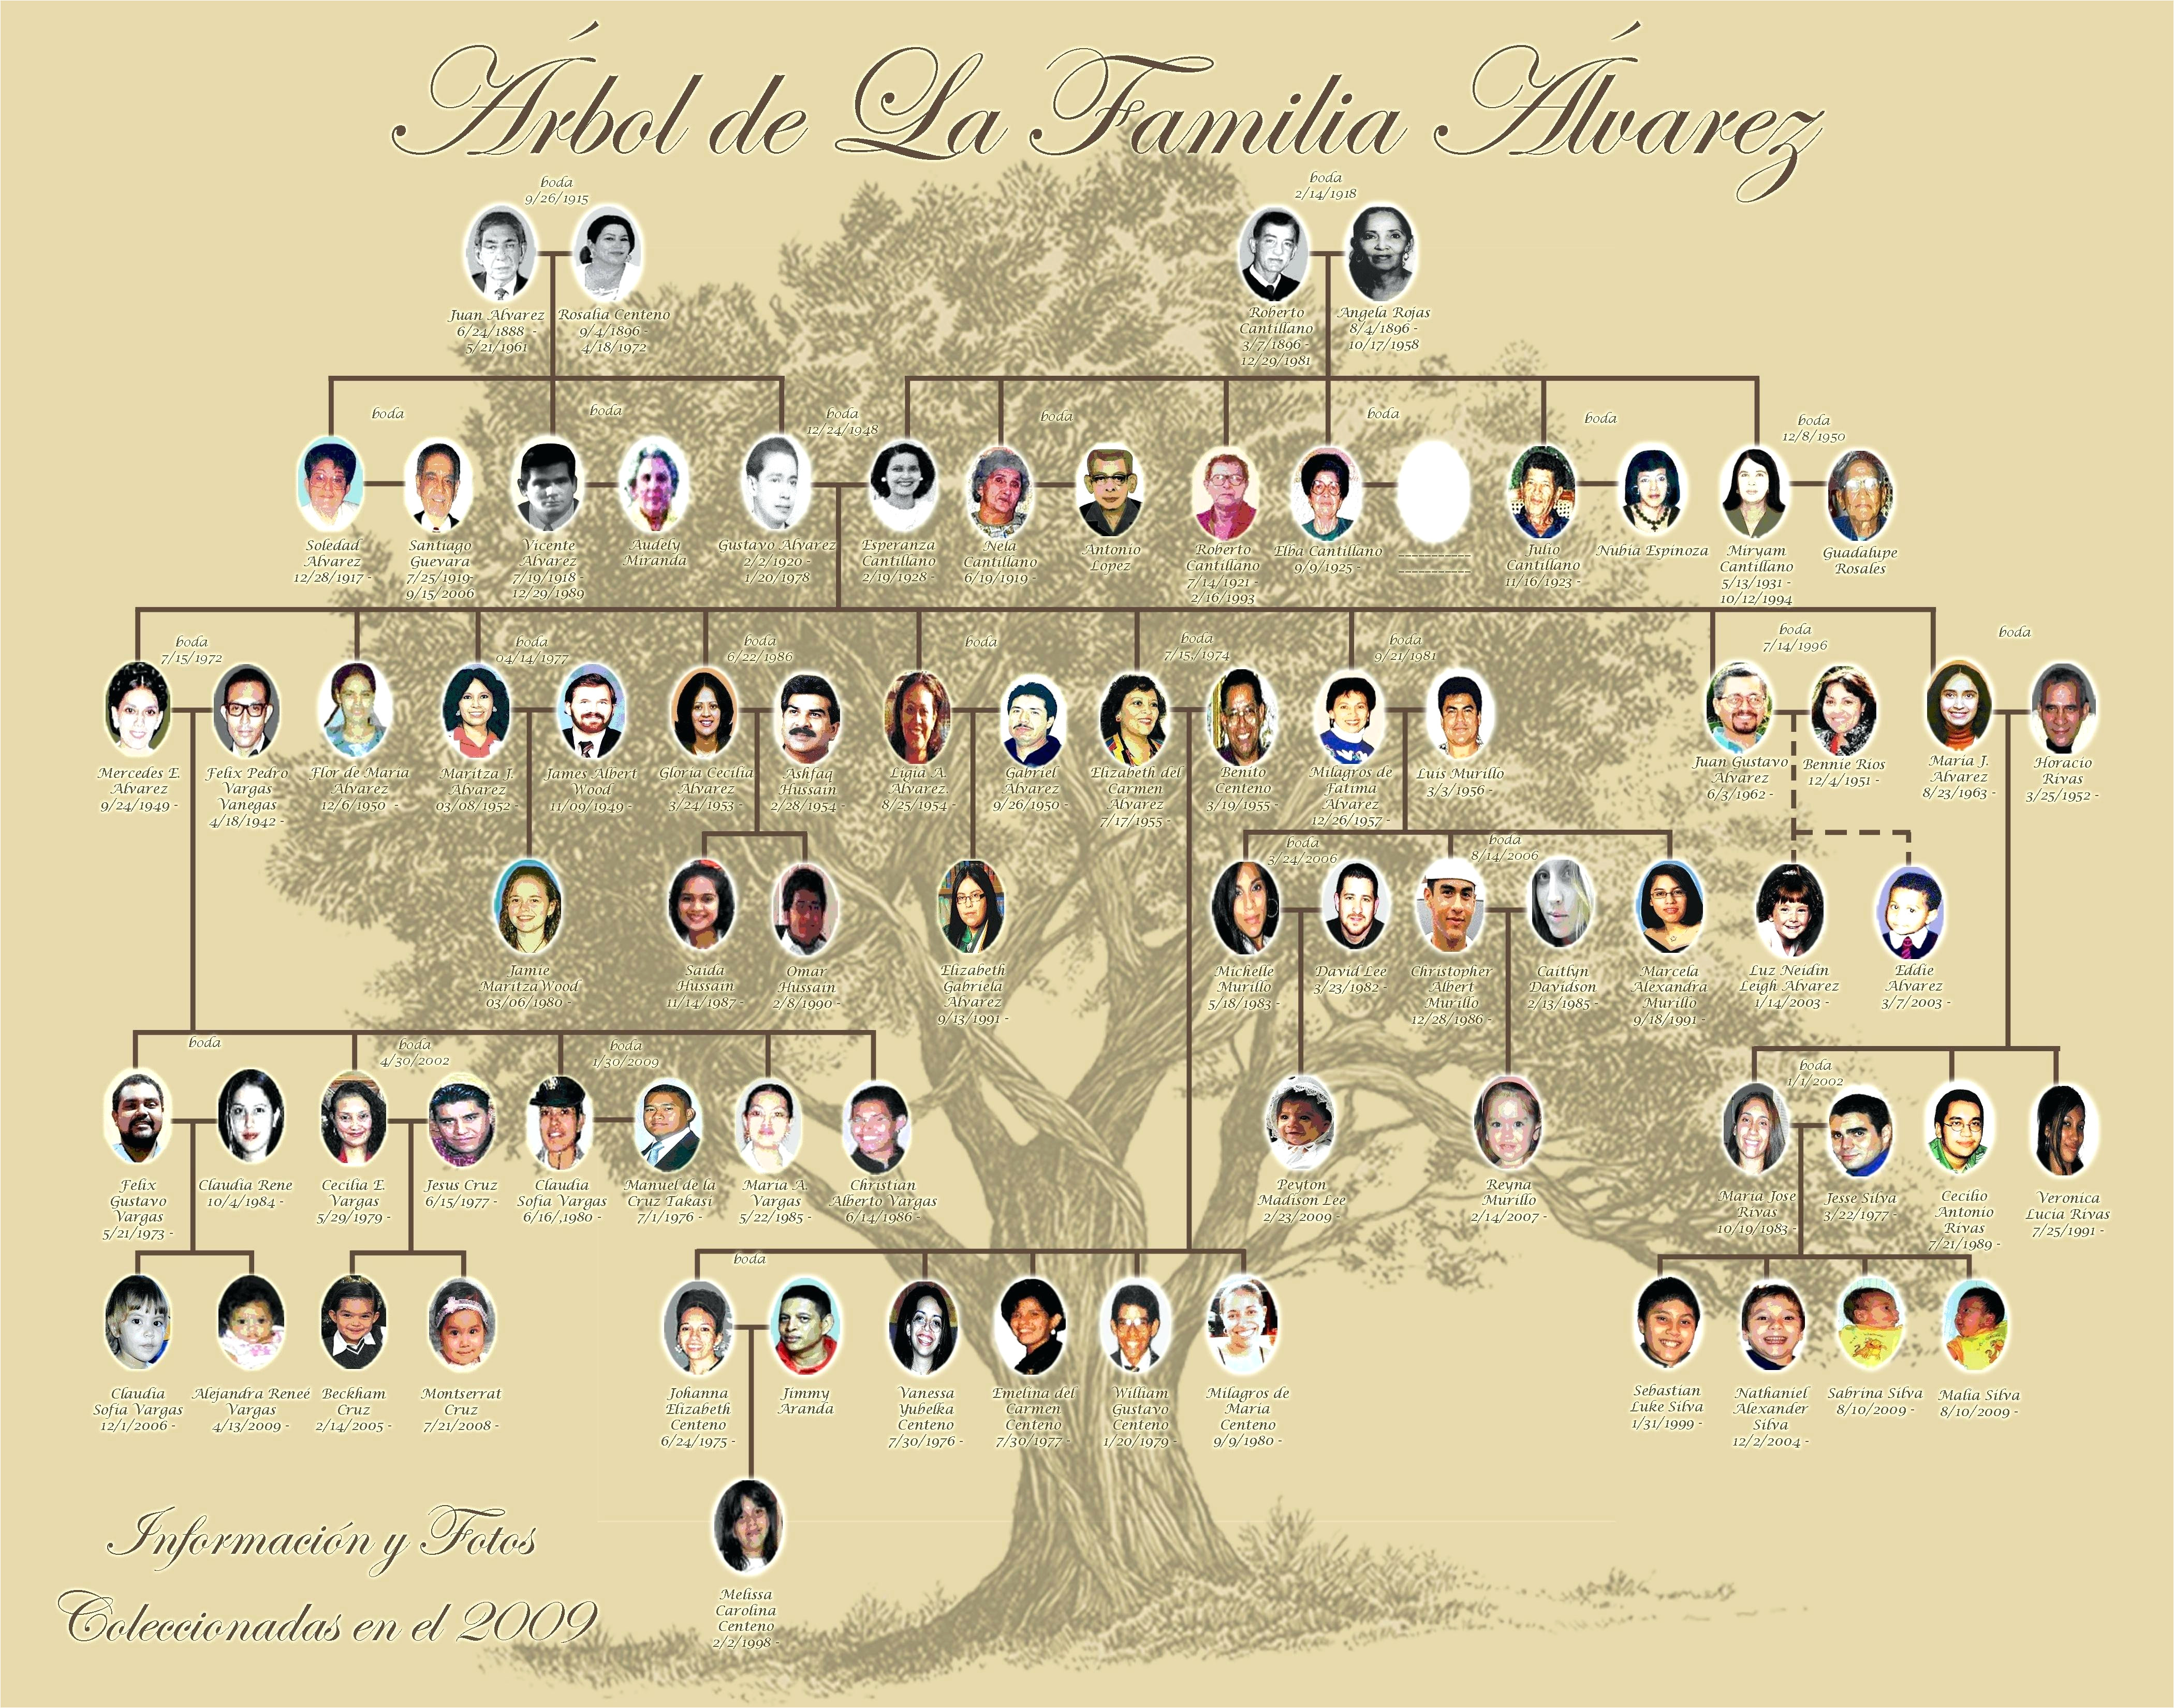 10 generation family tree template excel luxury 10 generation family tree template excel inspirational 10 generation